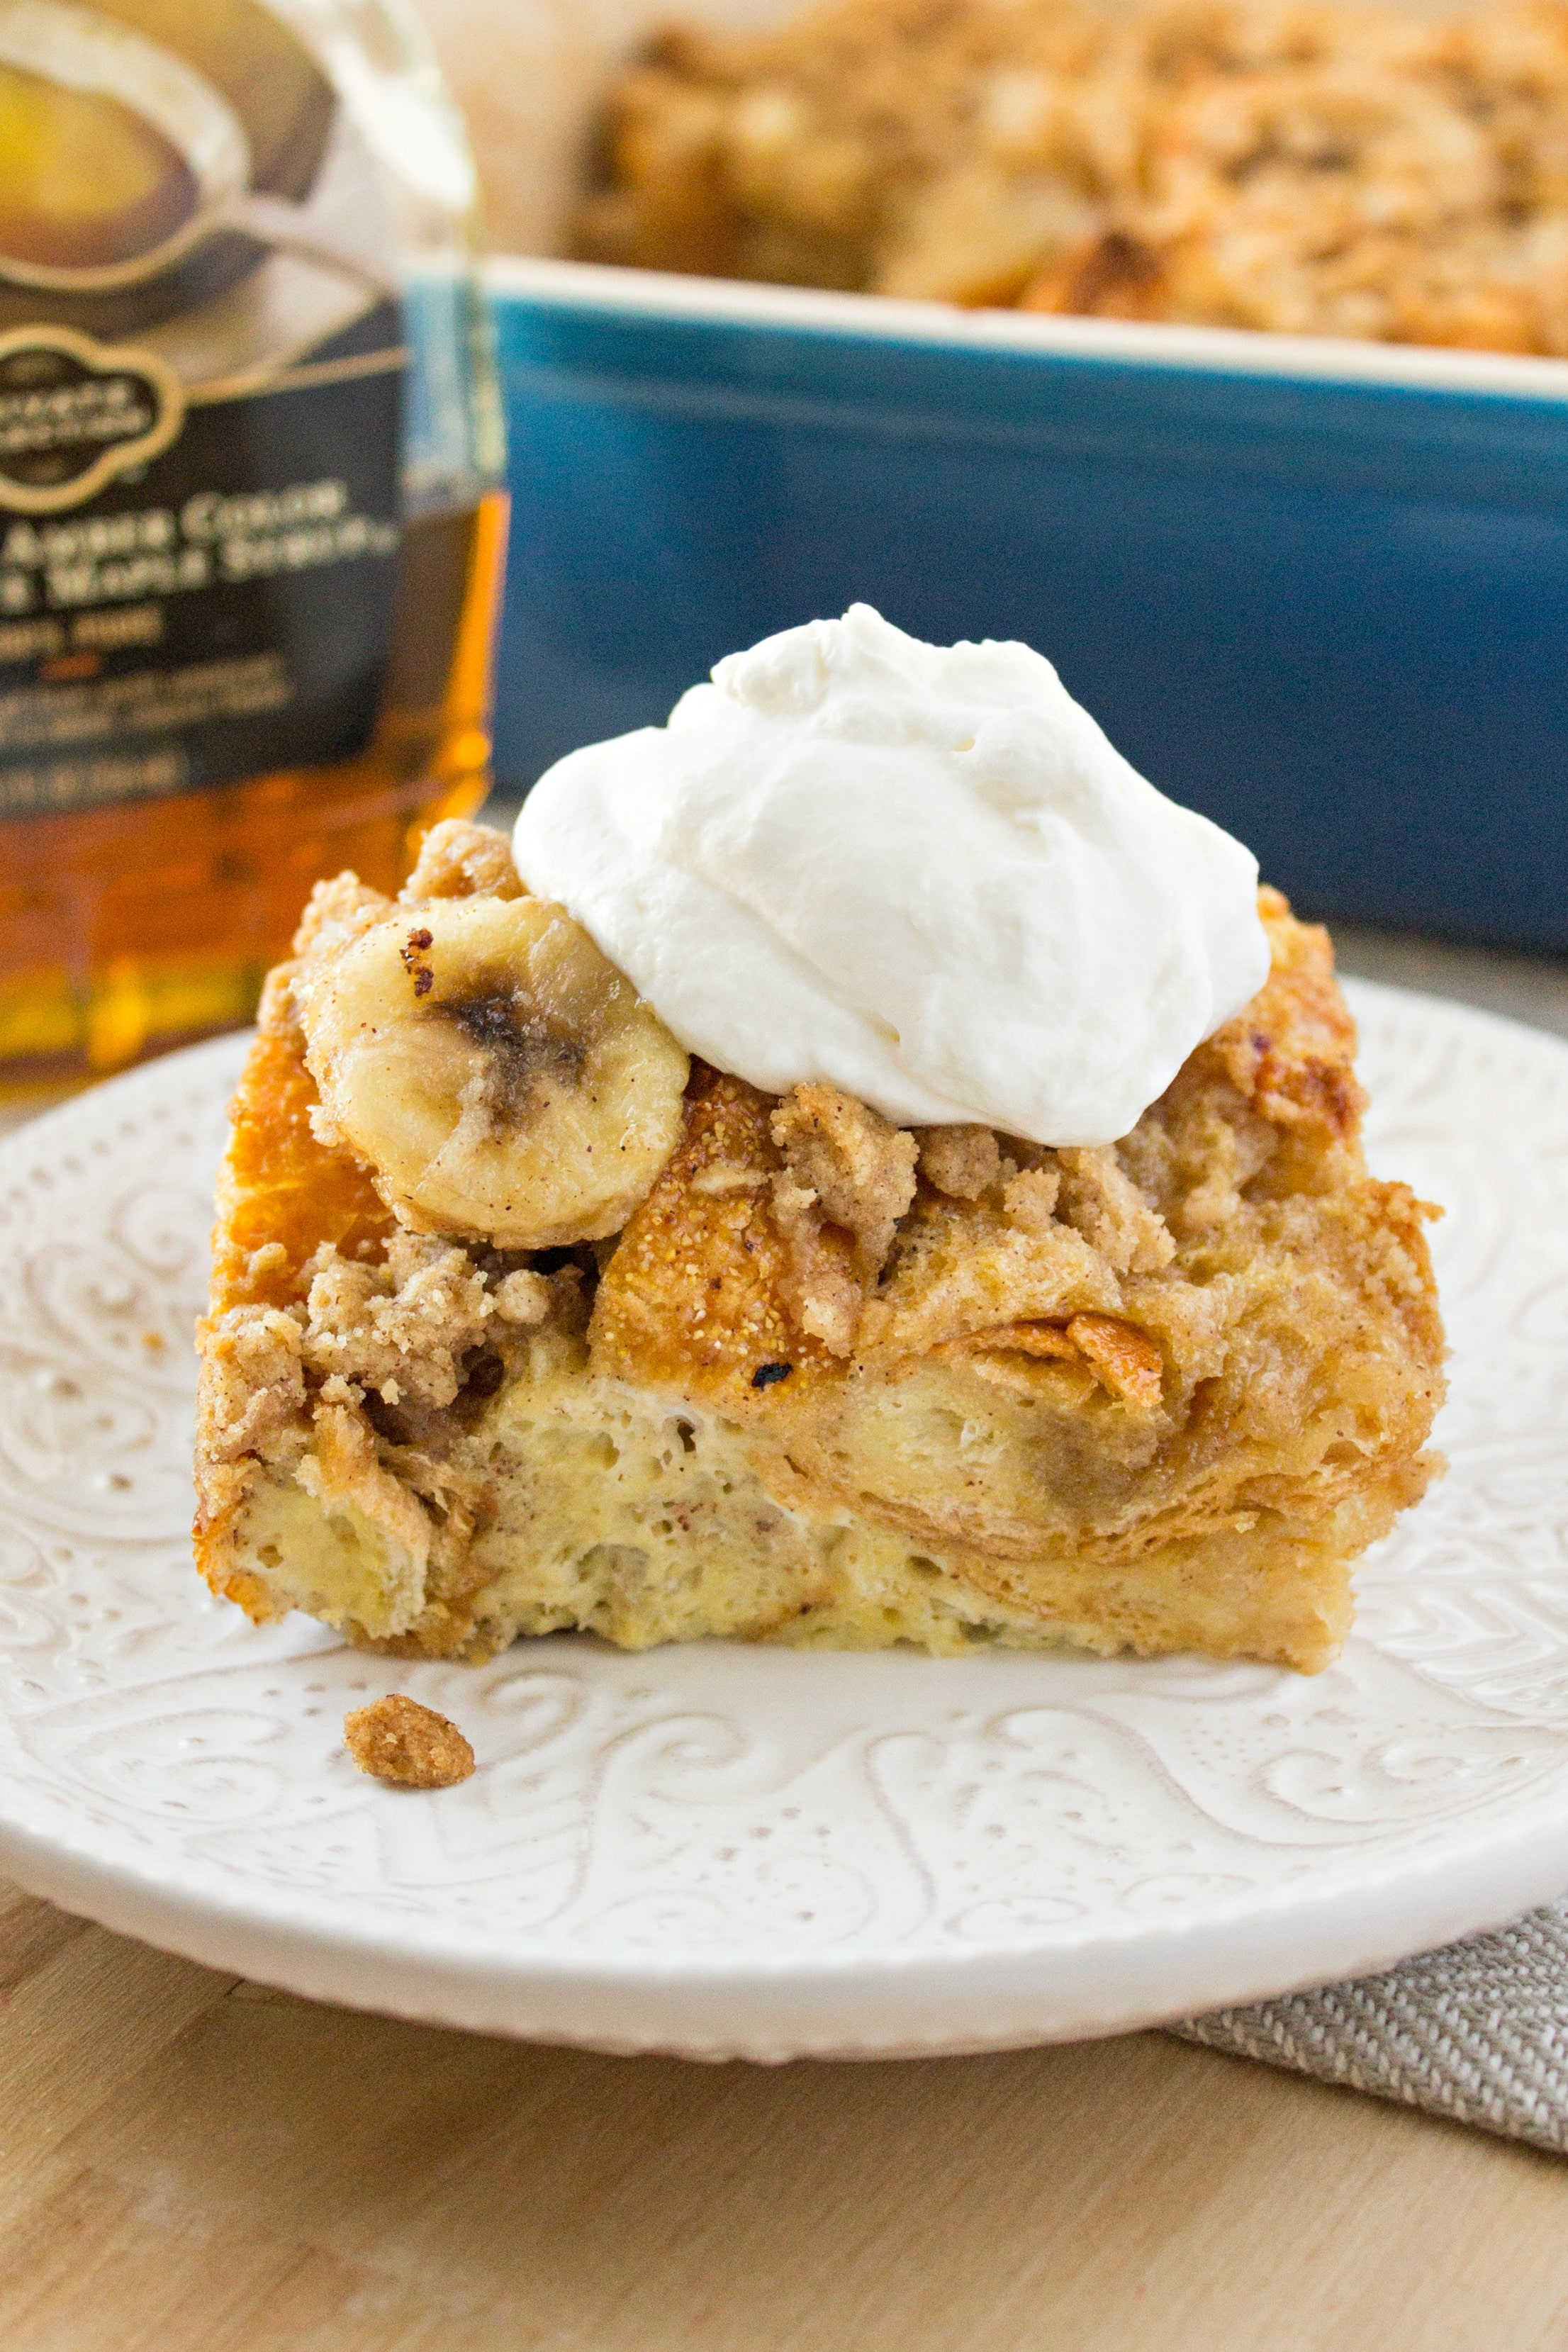 Piece of Bananas Foster French Toast Casserole